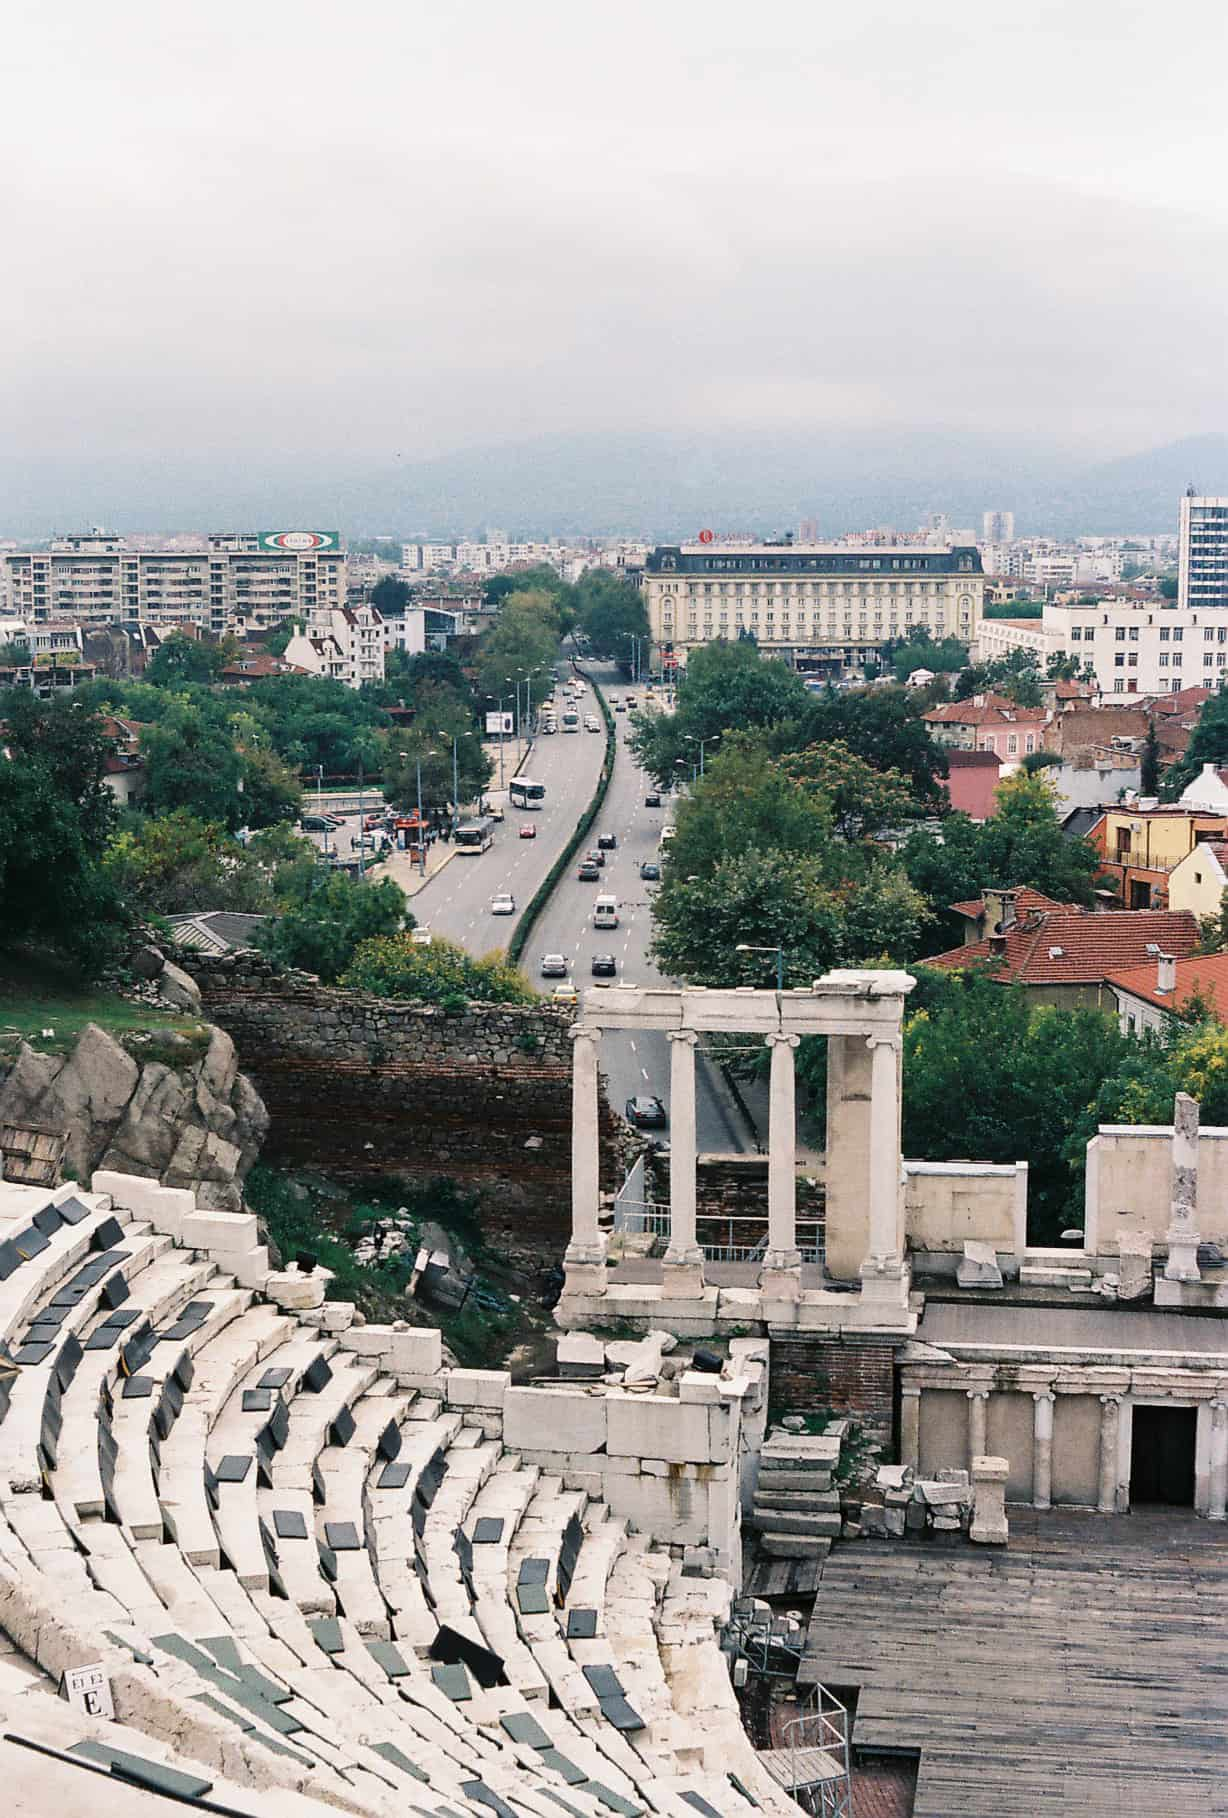 Monuments in Plovdiv, Bulgaria